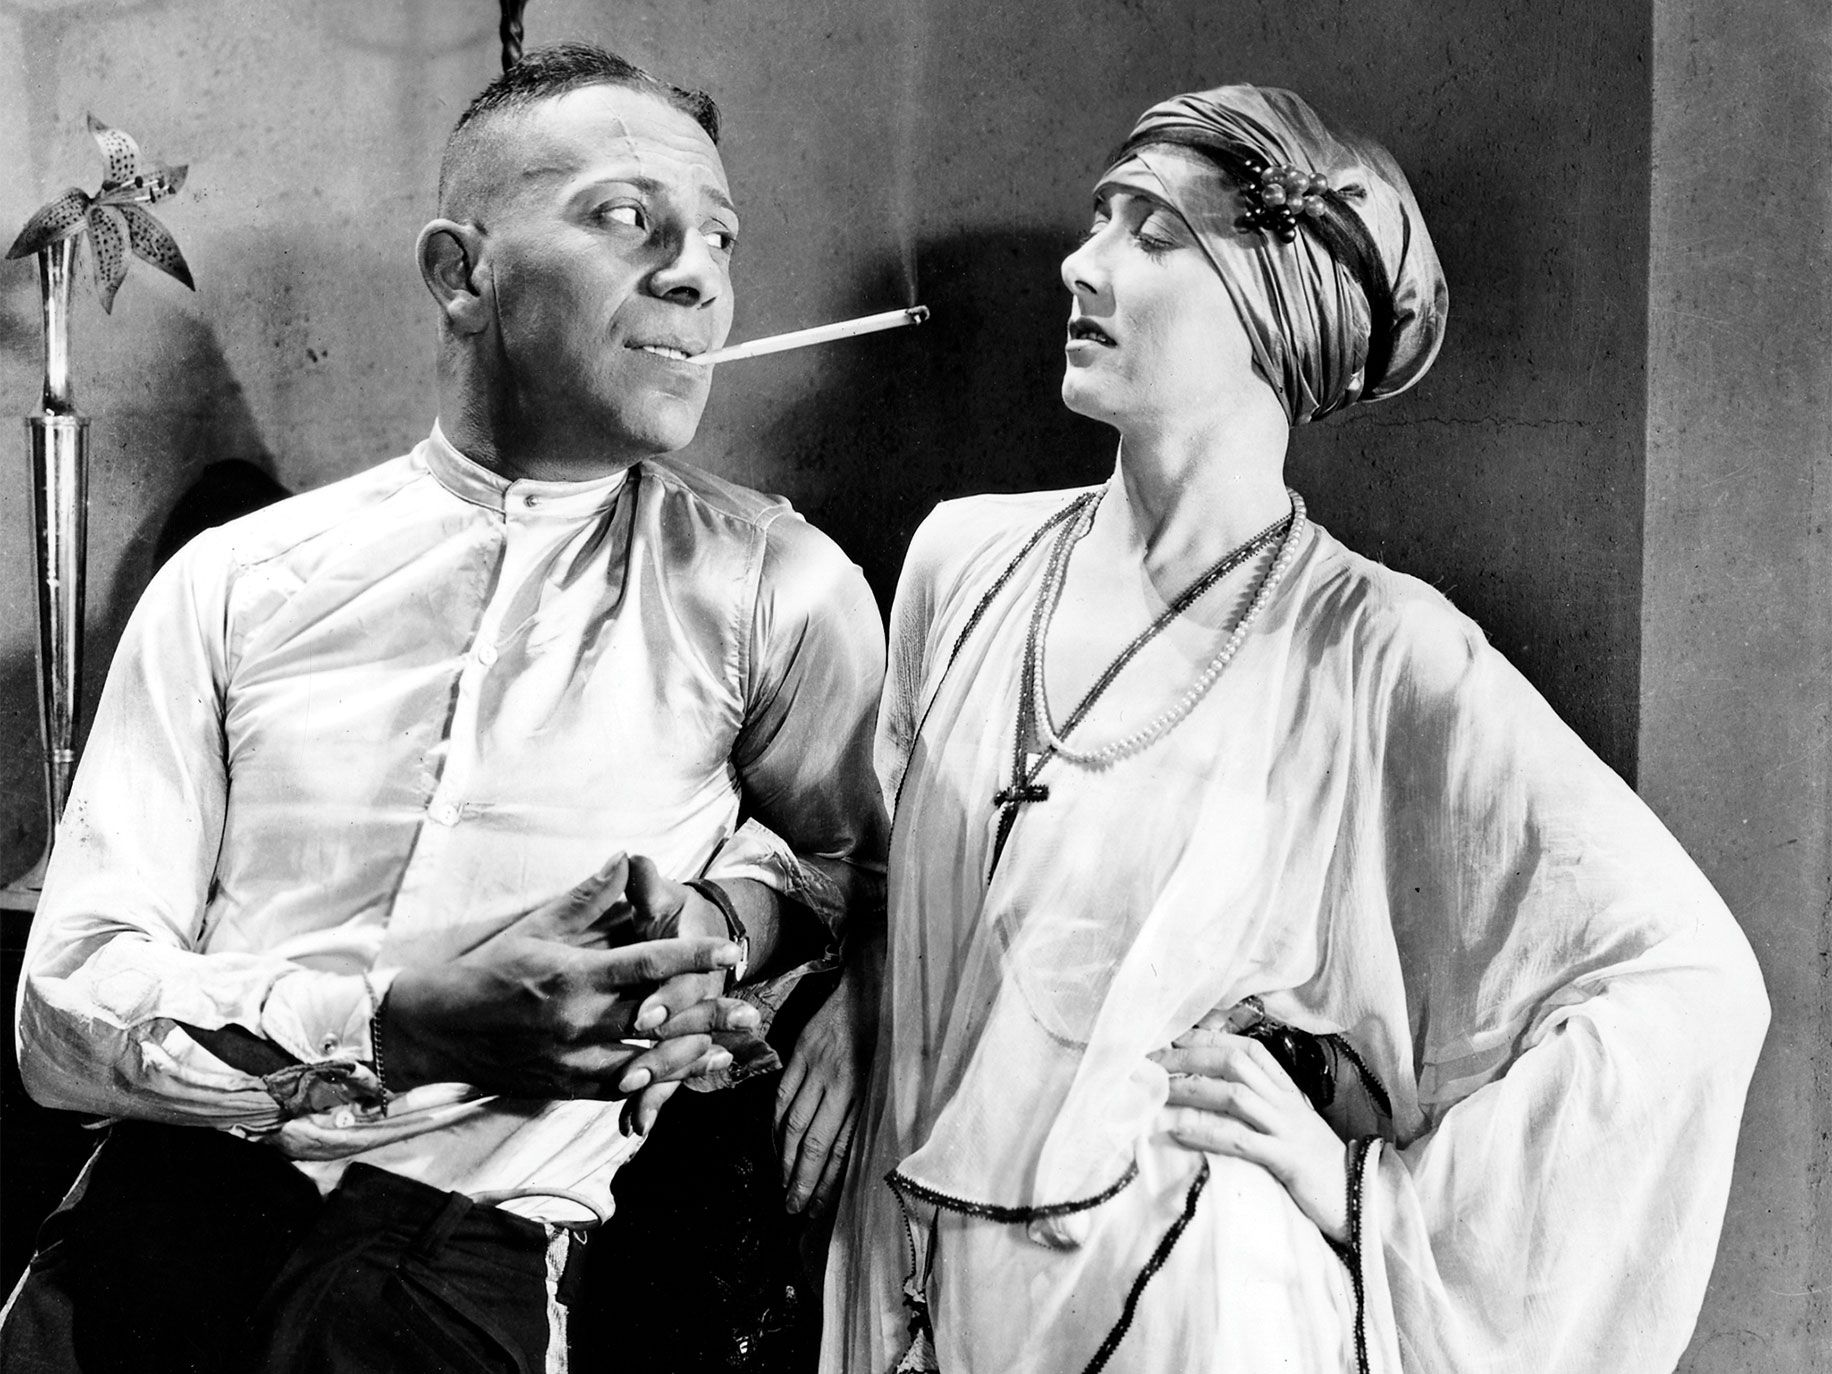 Erich von Stroheim and Miss DuPont in Foolish Wives (1922). A restored version of this masterpiece will premiere at this year's San Francisco Silent Film Festival.